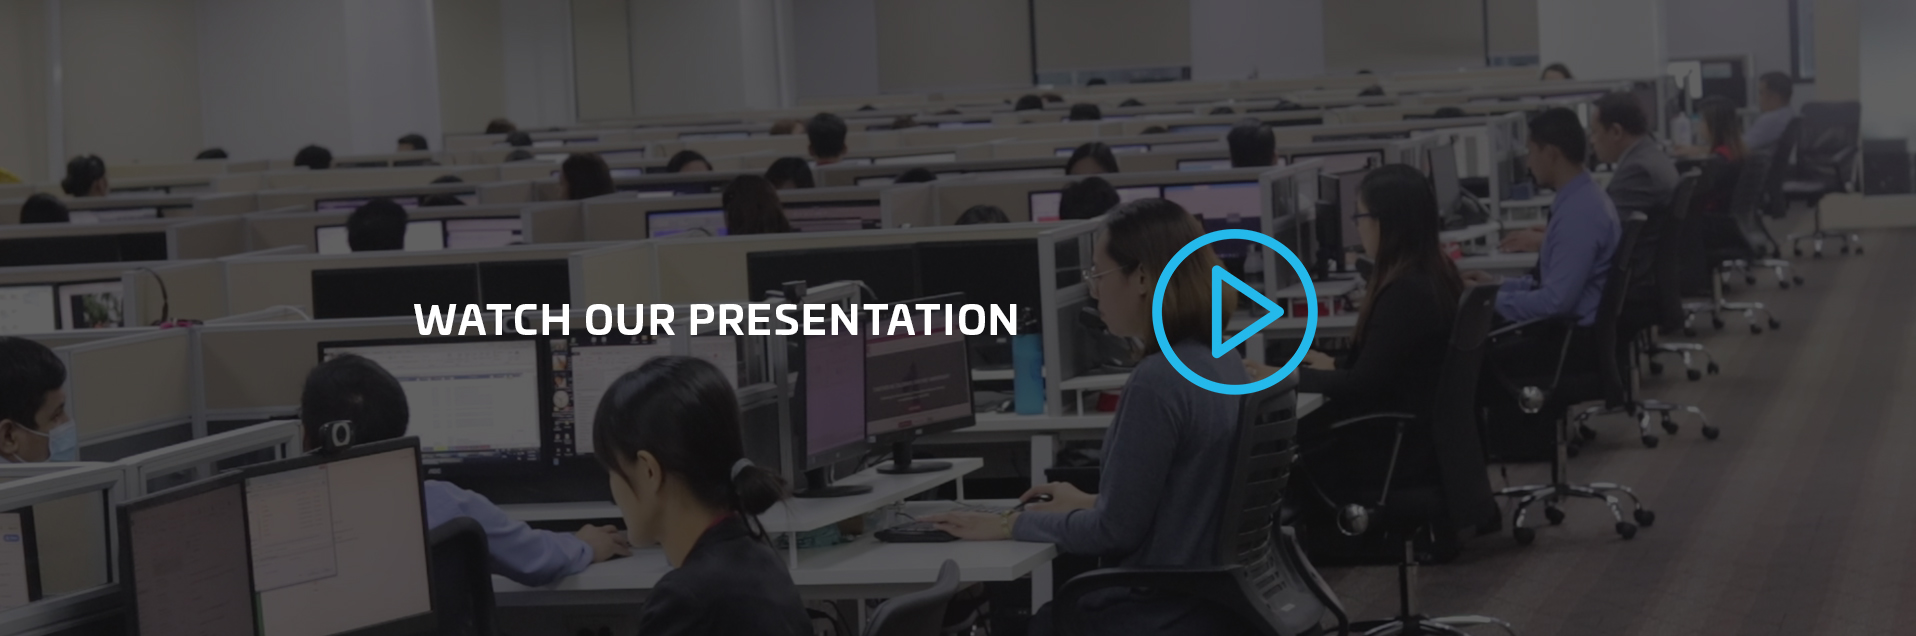 Watch our Presentation